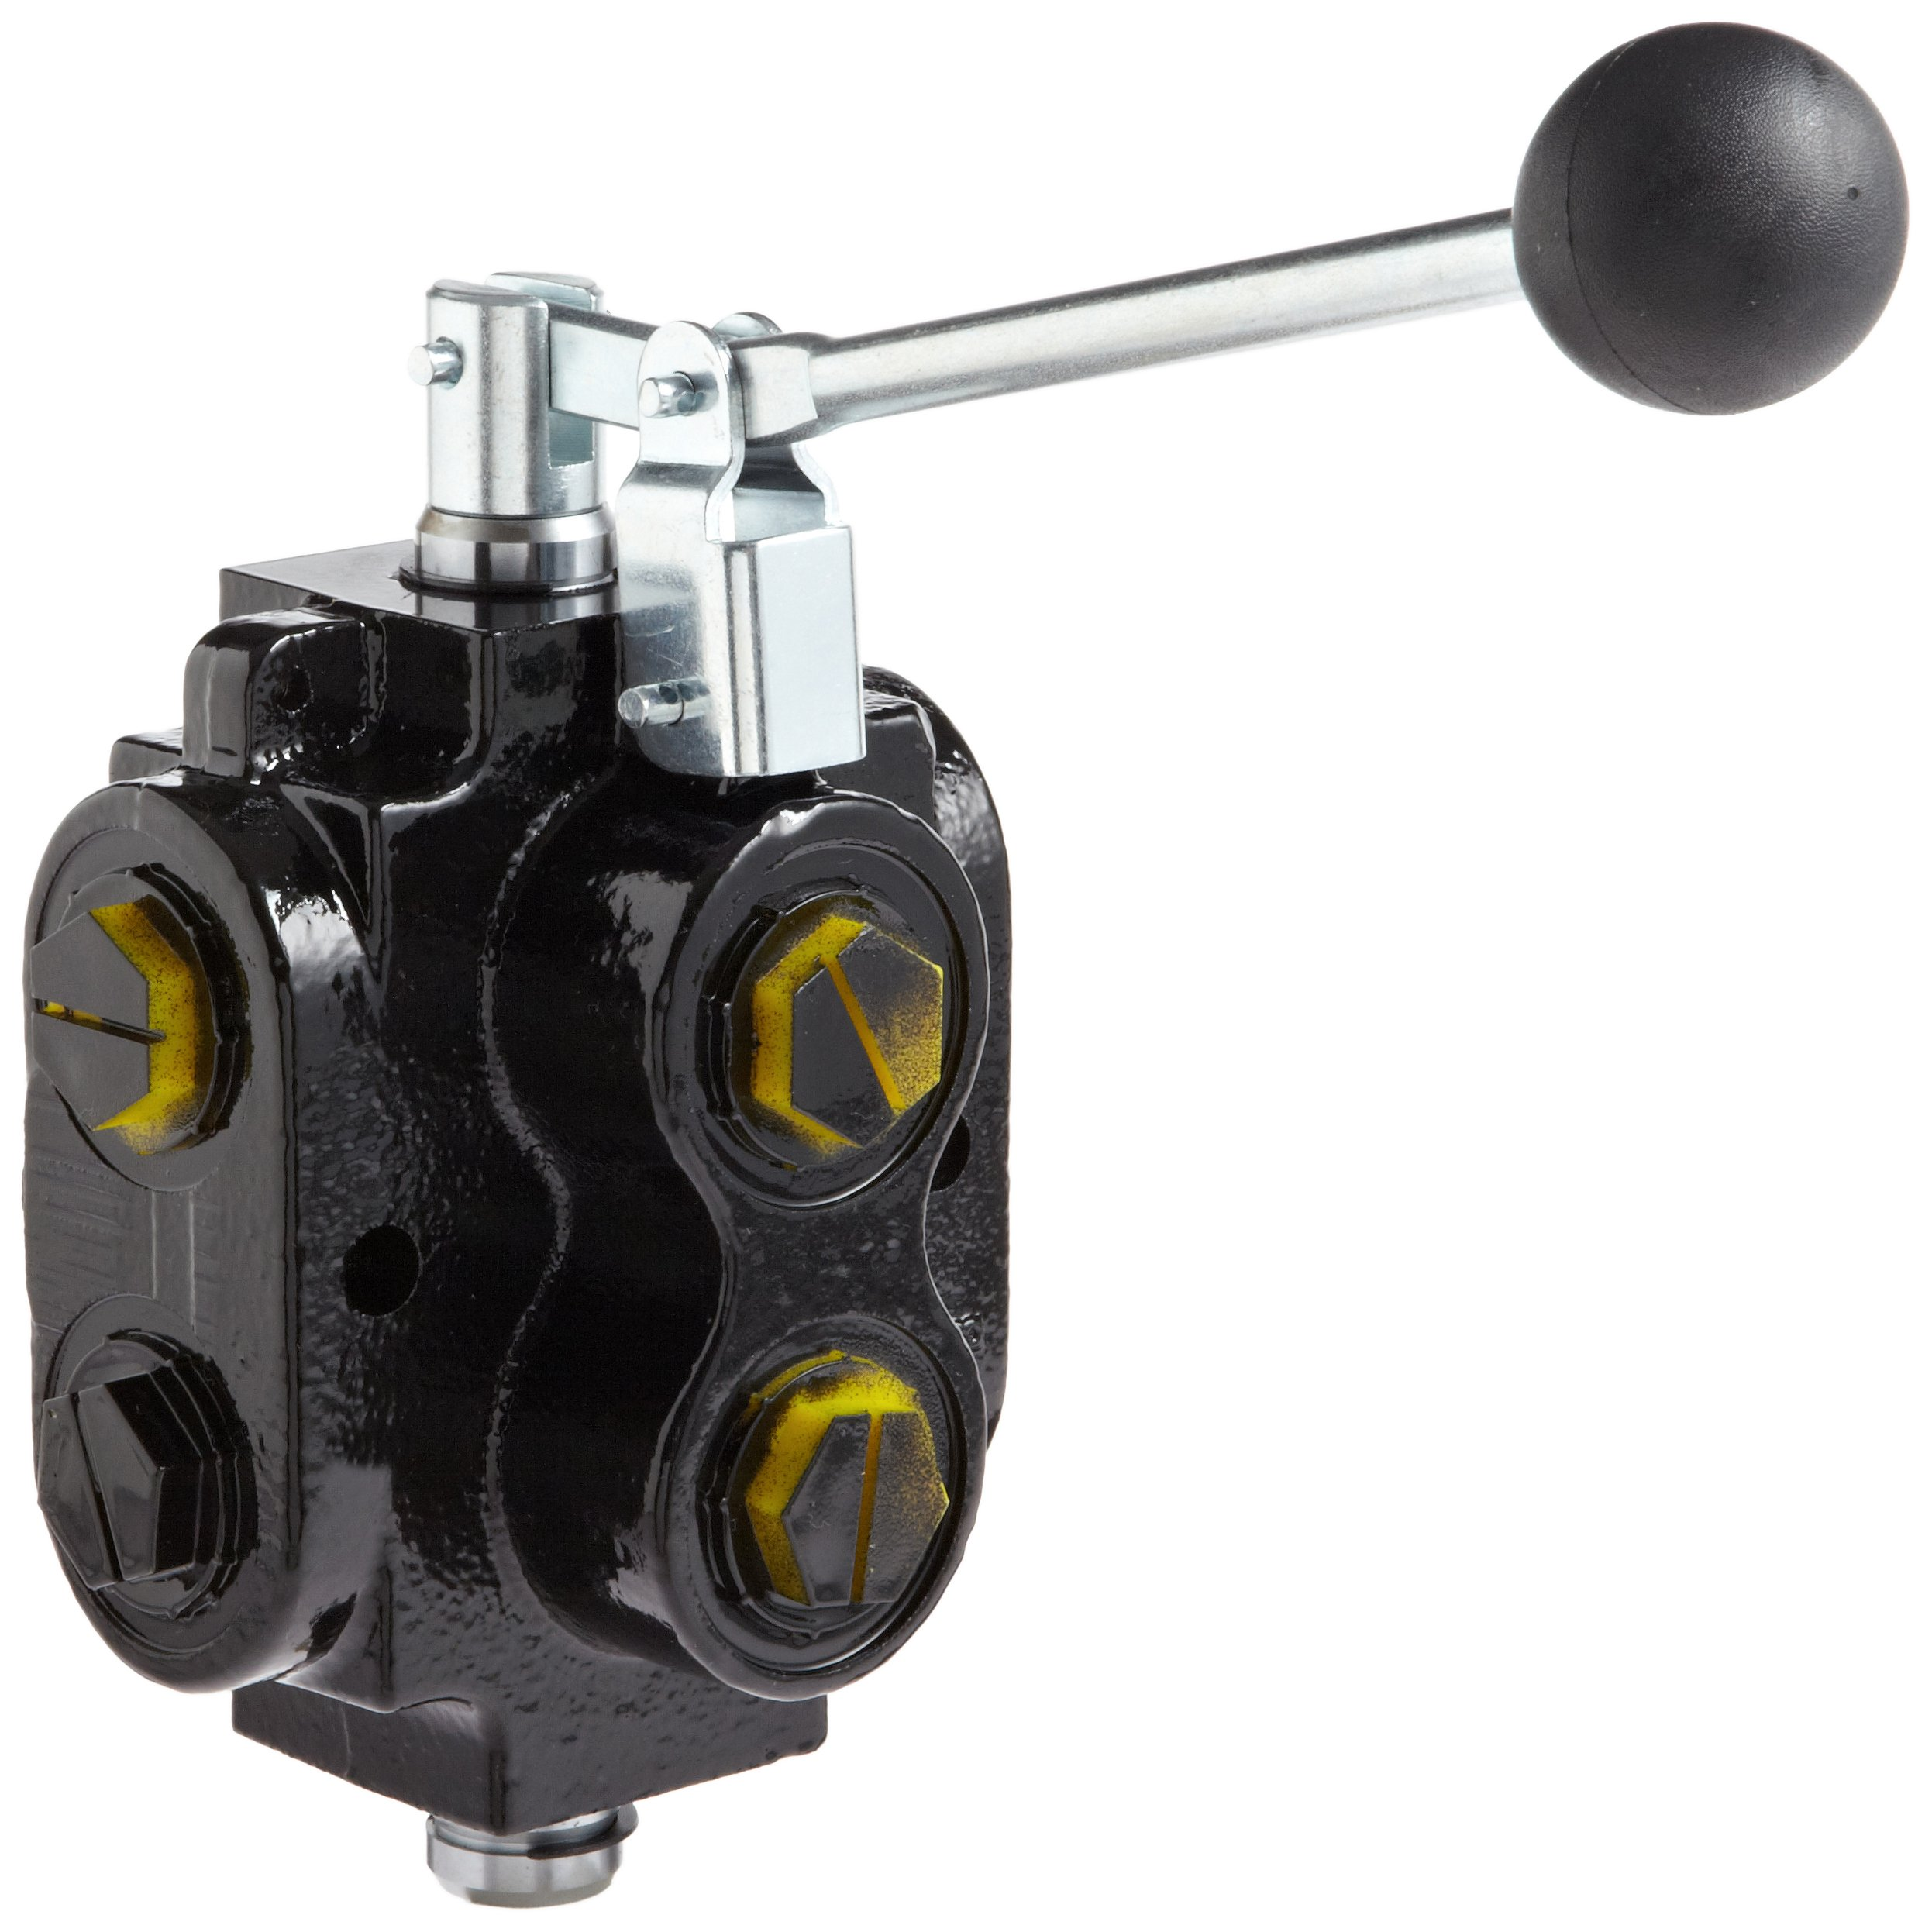 Prince DS-5A1E Directional Control Valve, Monoblock, Cast Iron, 1 Spool, 6 Ways, 2 Positions, Lever Handle, 2500 psi, 40 gpm, #12 SAE